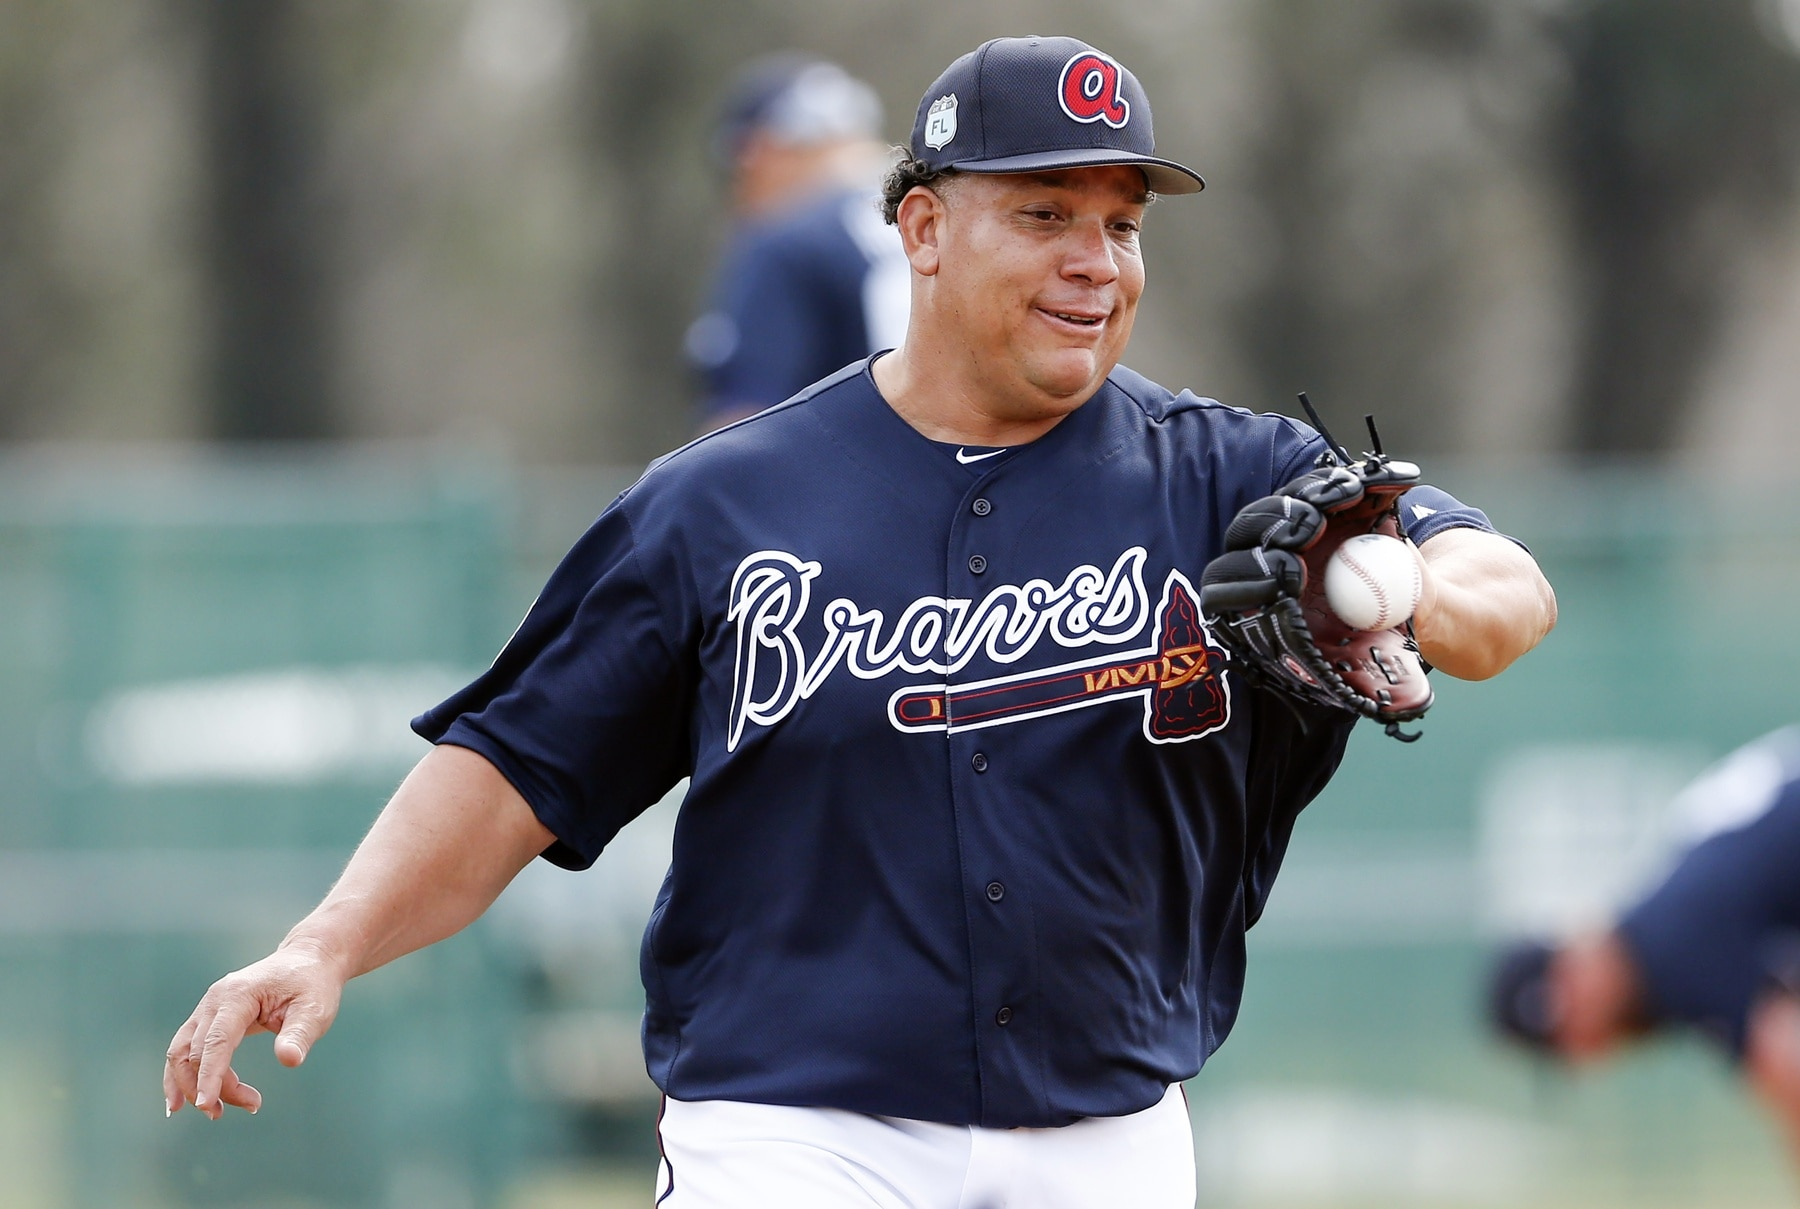 Feb 15, 2017; Lake Buena Vista, FL, USA; Atlanta Braves starting pitcher Bartolo Colon (40) catches a ball while covering first base during MLB spring training workouts at Champion Stadium. Mandatory Credit: Reinhold Matay-USA TODAY Sports